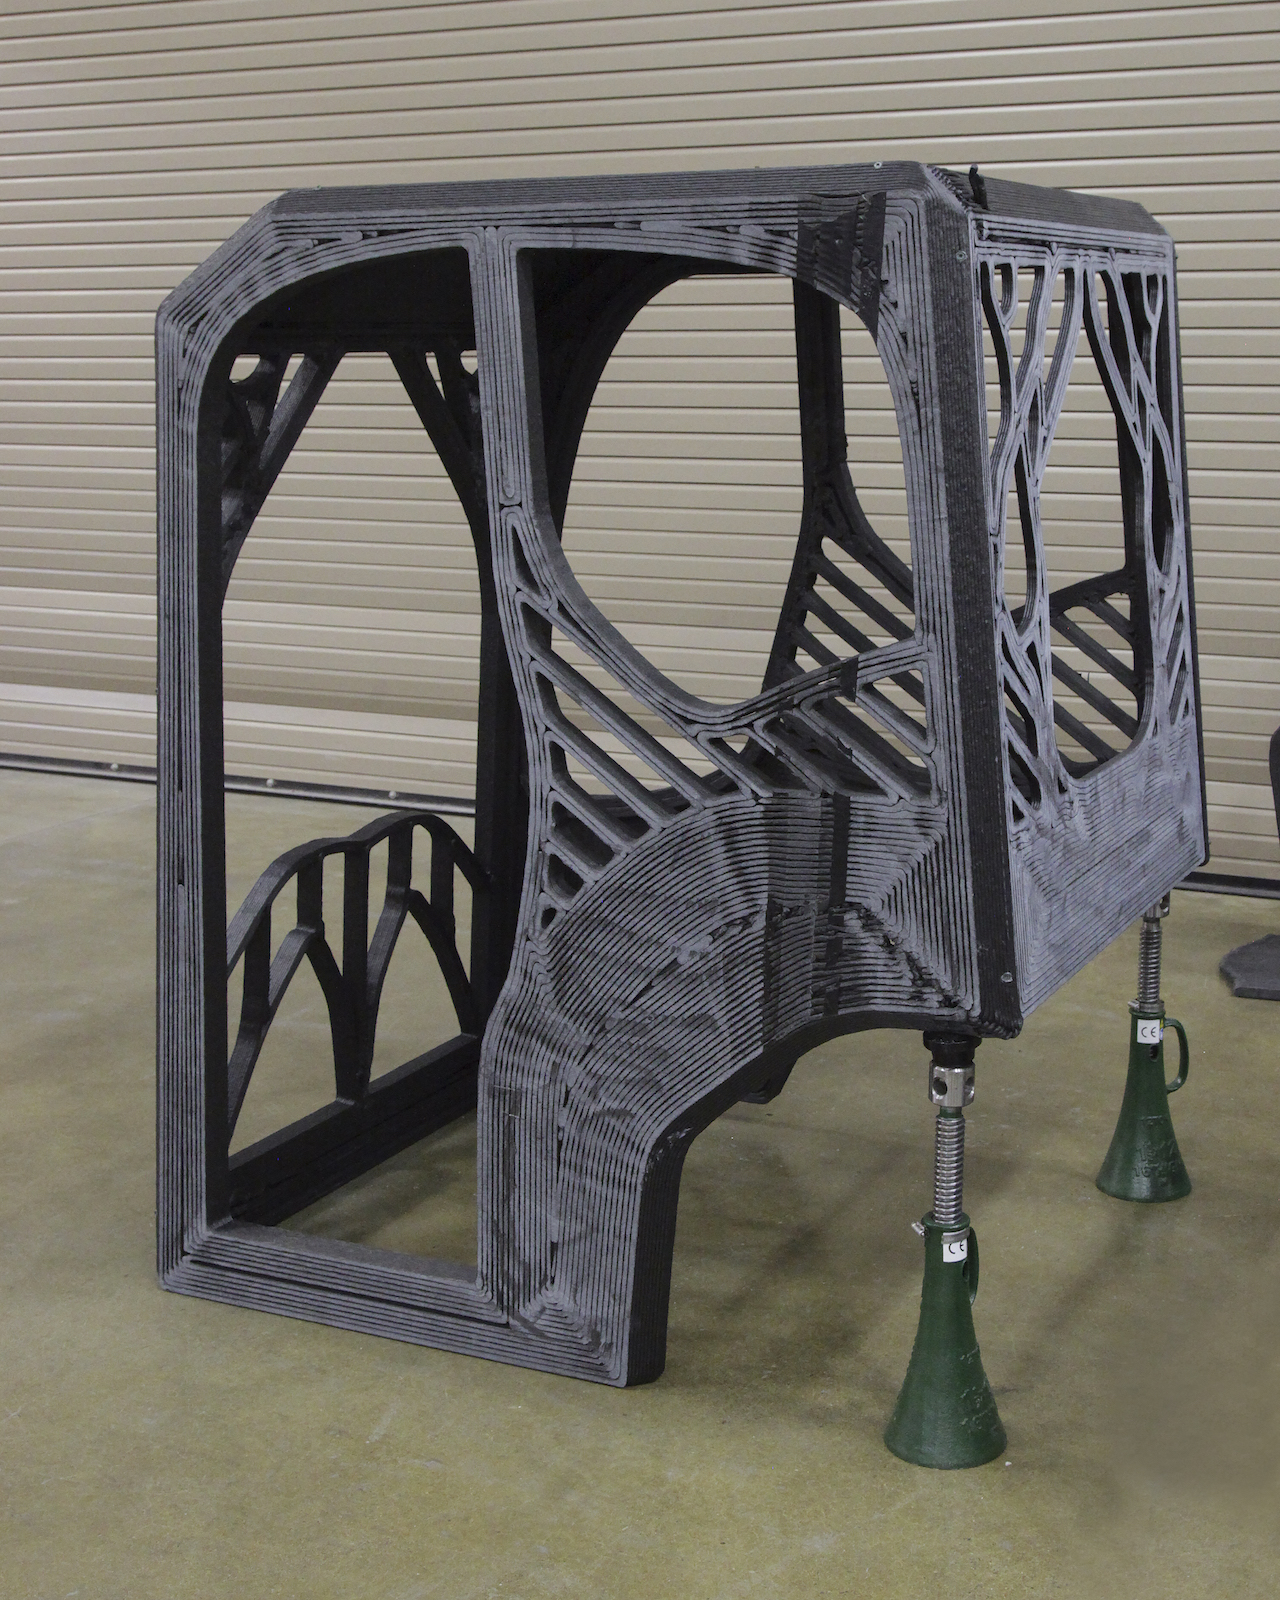 The first-ever 3D printed excavator project includes an excavator cab designed by a University of Illinois at Urbana-Champaign student engineering team, which was printed at DOE's Manufacturing Demonstration Facility at ORNL using carbon fiber-reinforced ABS plastic as a prototype.